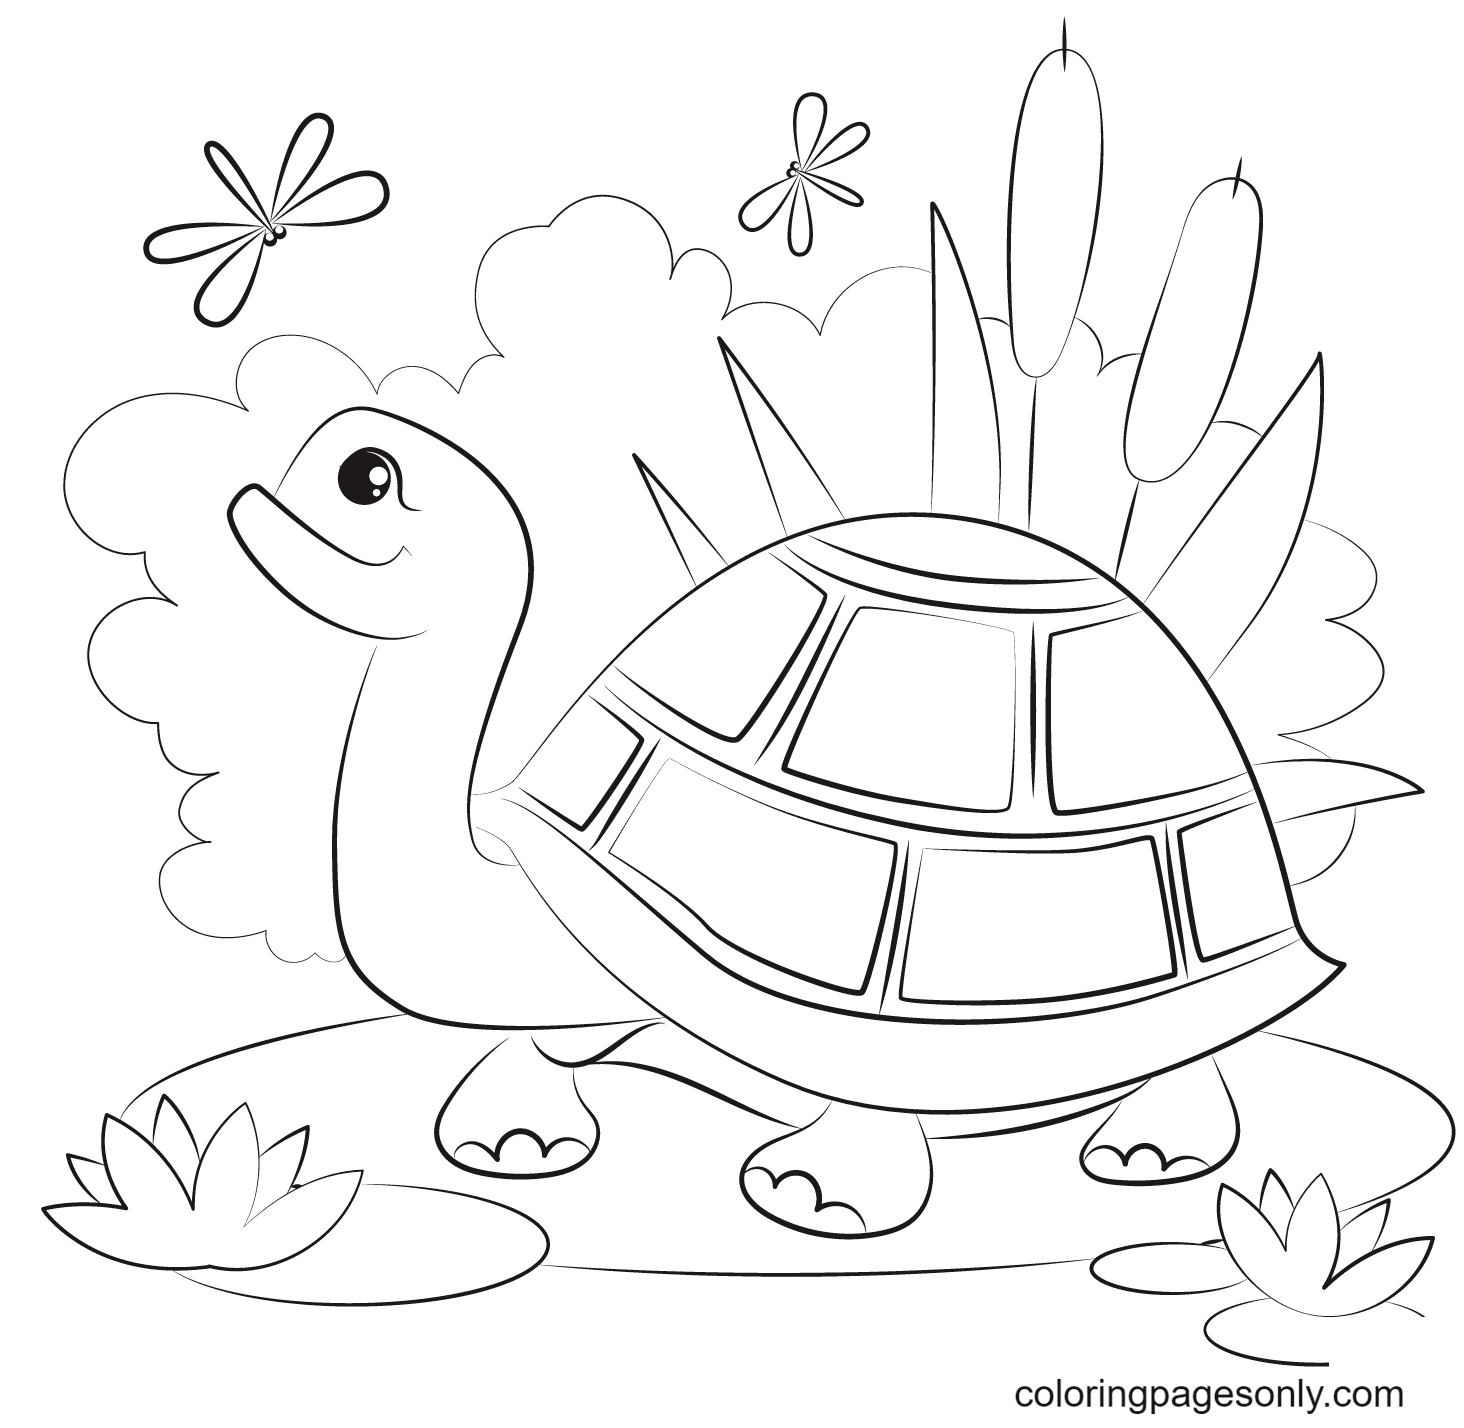 Turtle See Dragonflies Coloring Page